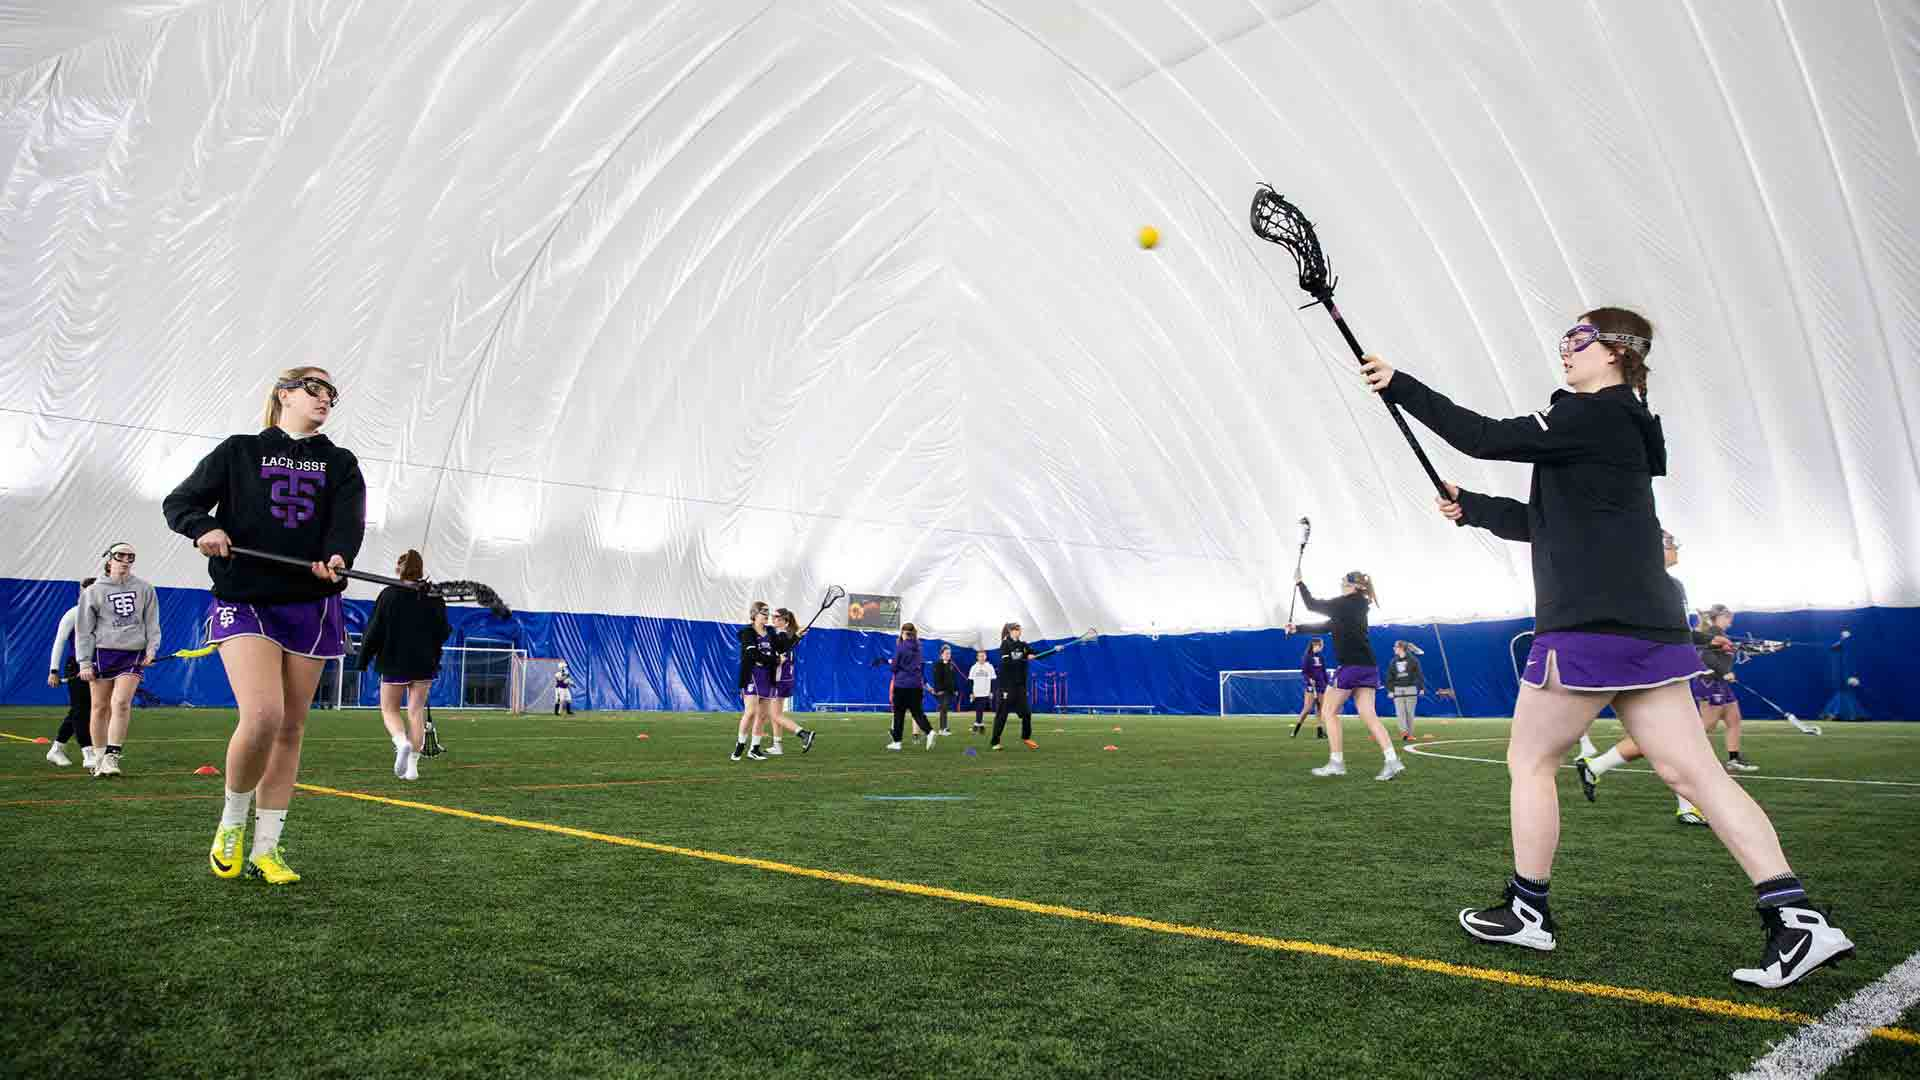 Women's club lacrosse team during their game against St. Olaf.